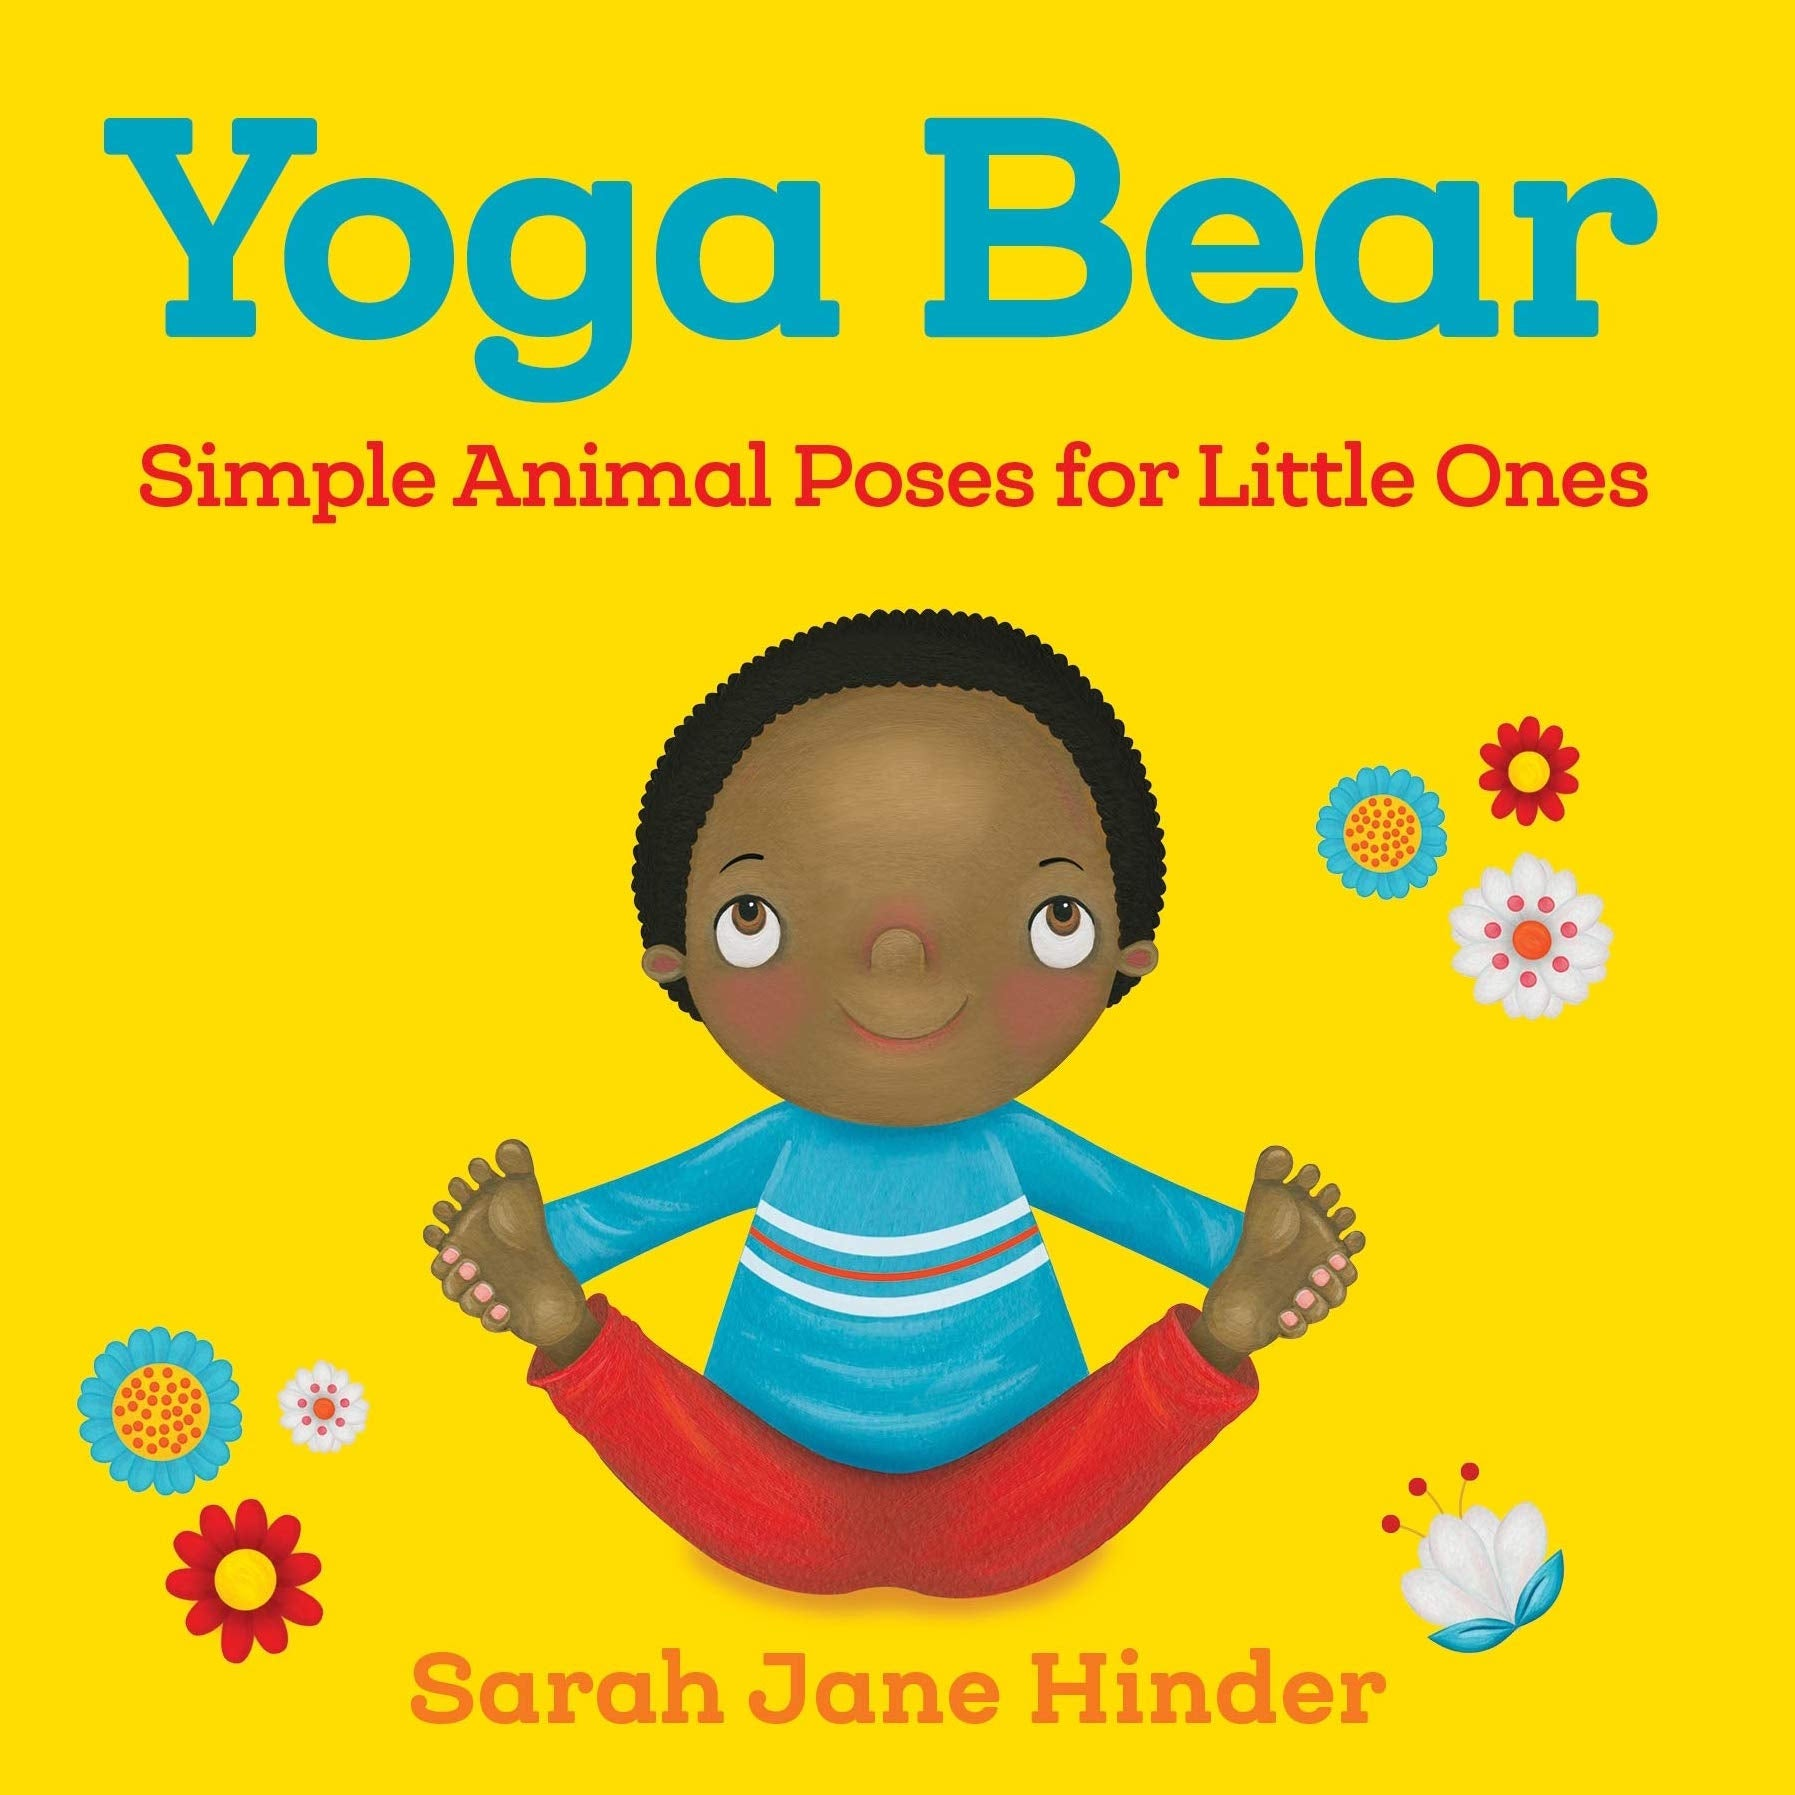 Yoga Bear - children's book by Sarah Jane Hinder